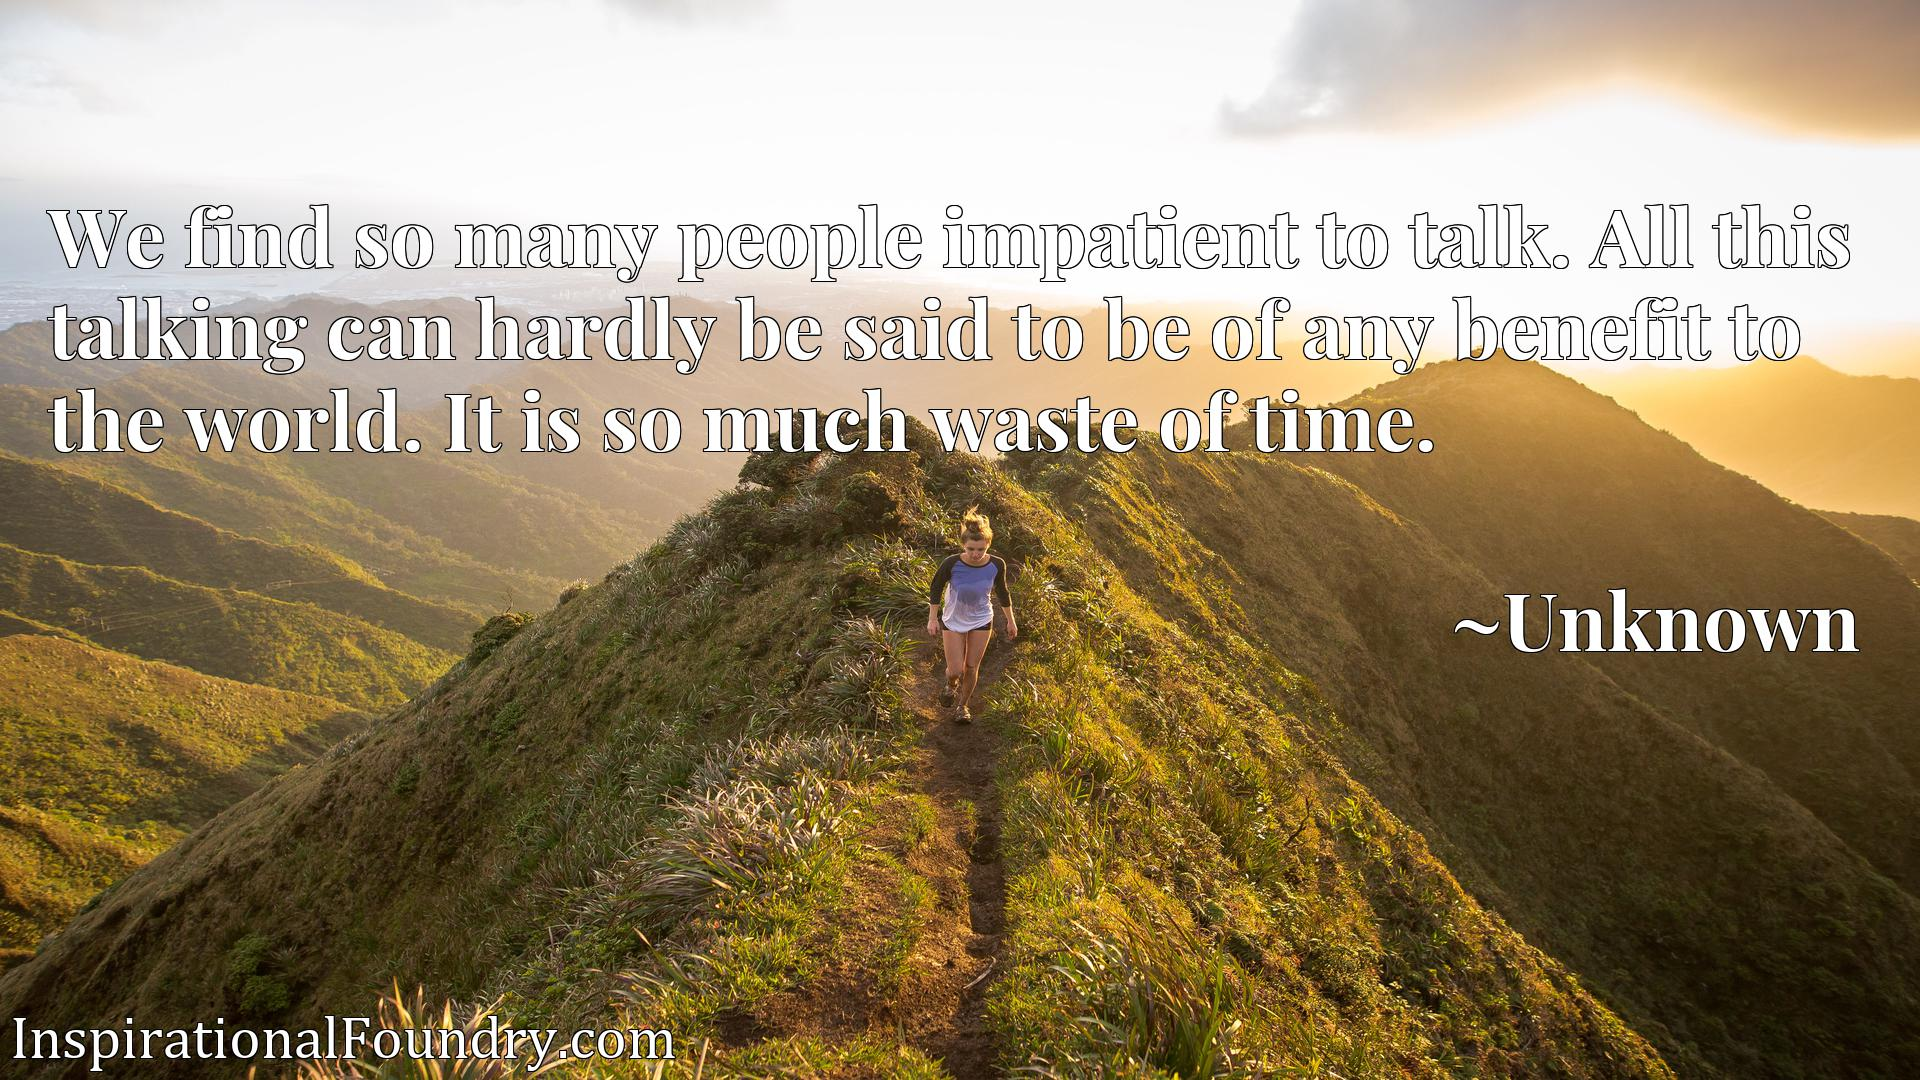 Quote Picture :We find so many people impatient to talk. All this talking can hardly be said to be of any benefit to the world. It is so much waste of time.